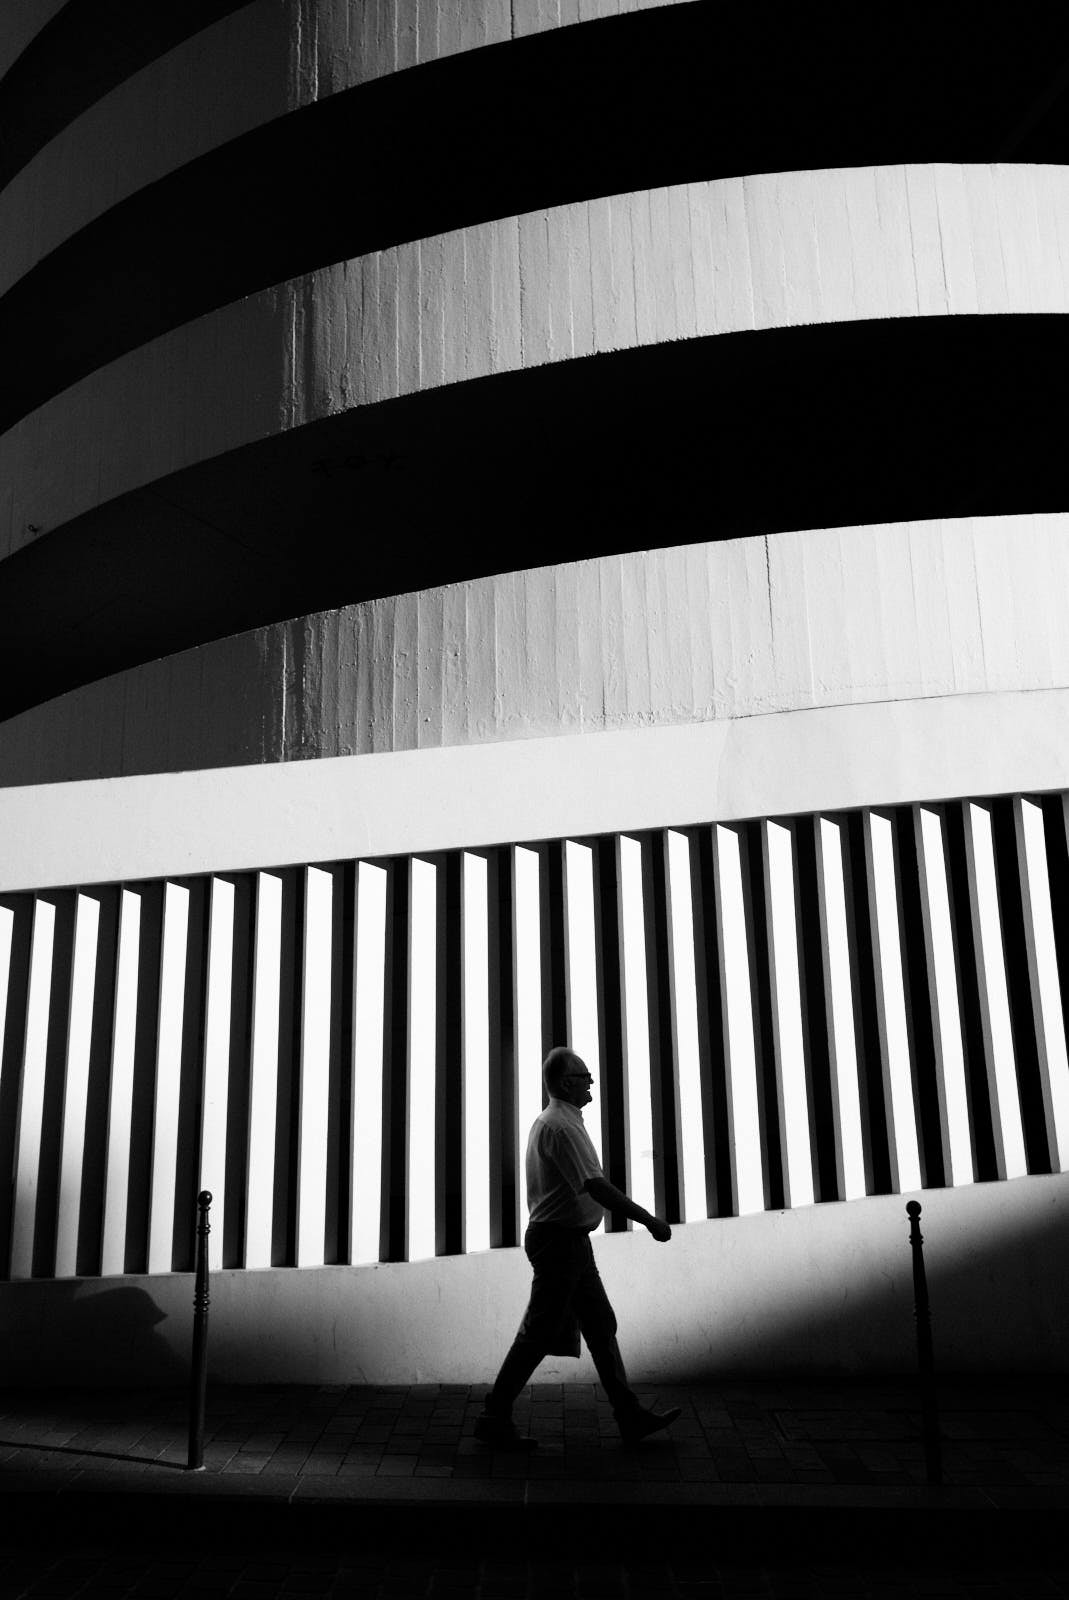 black and white street photography graphic building